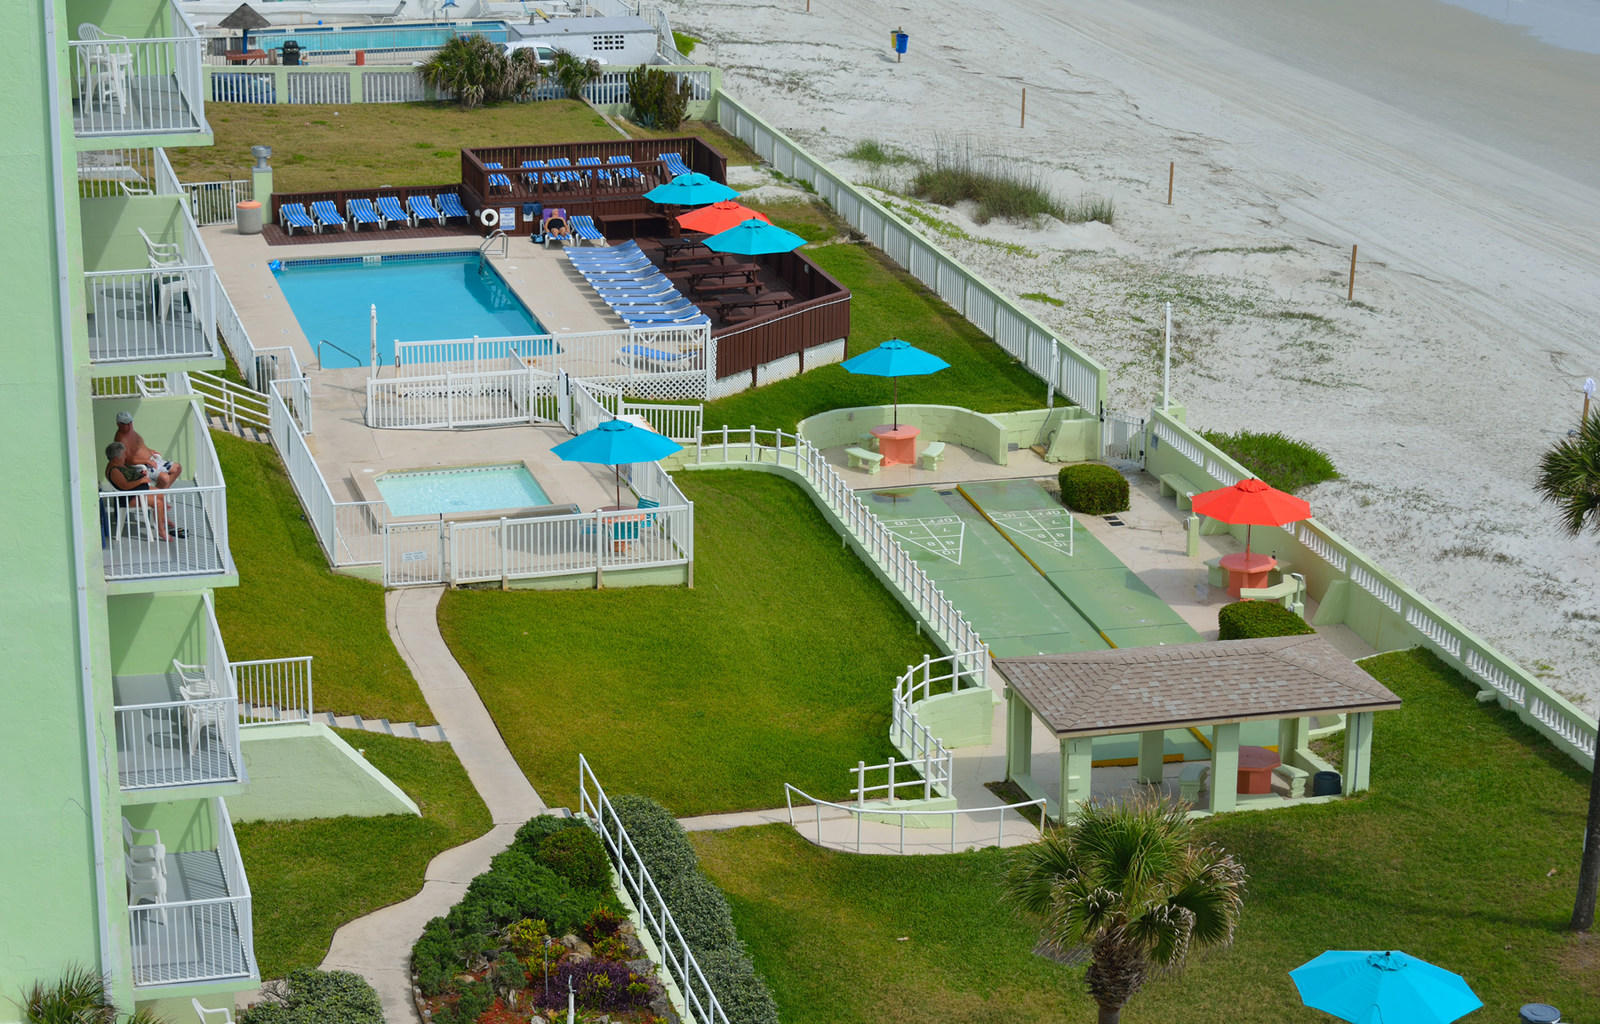 Boutique Accommodations And Flexible Event E The El Caribe Resort Conference Center Has Elished Itself As One Of Daytona Beach